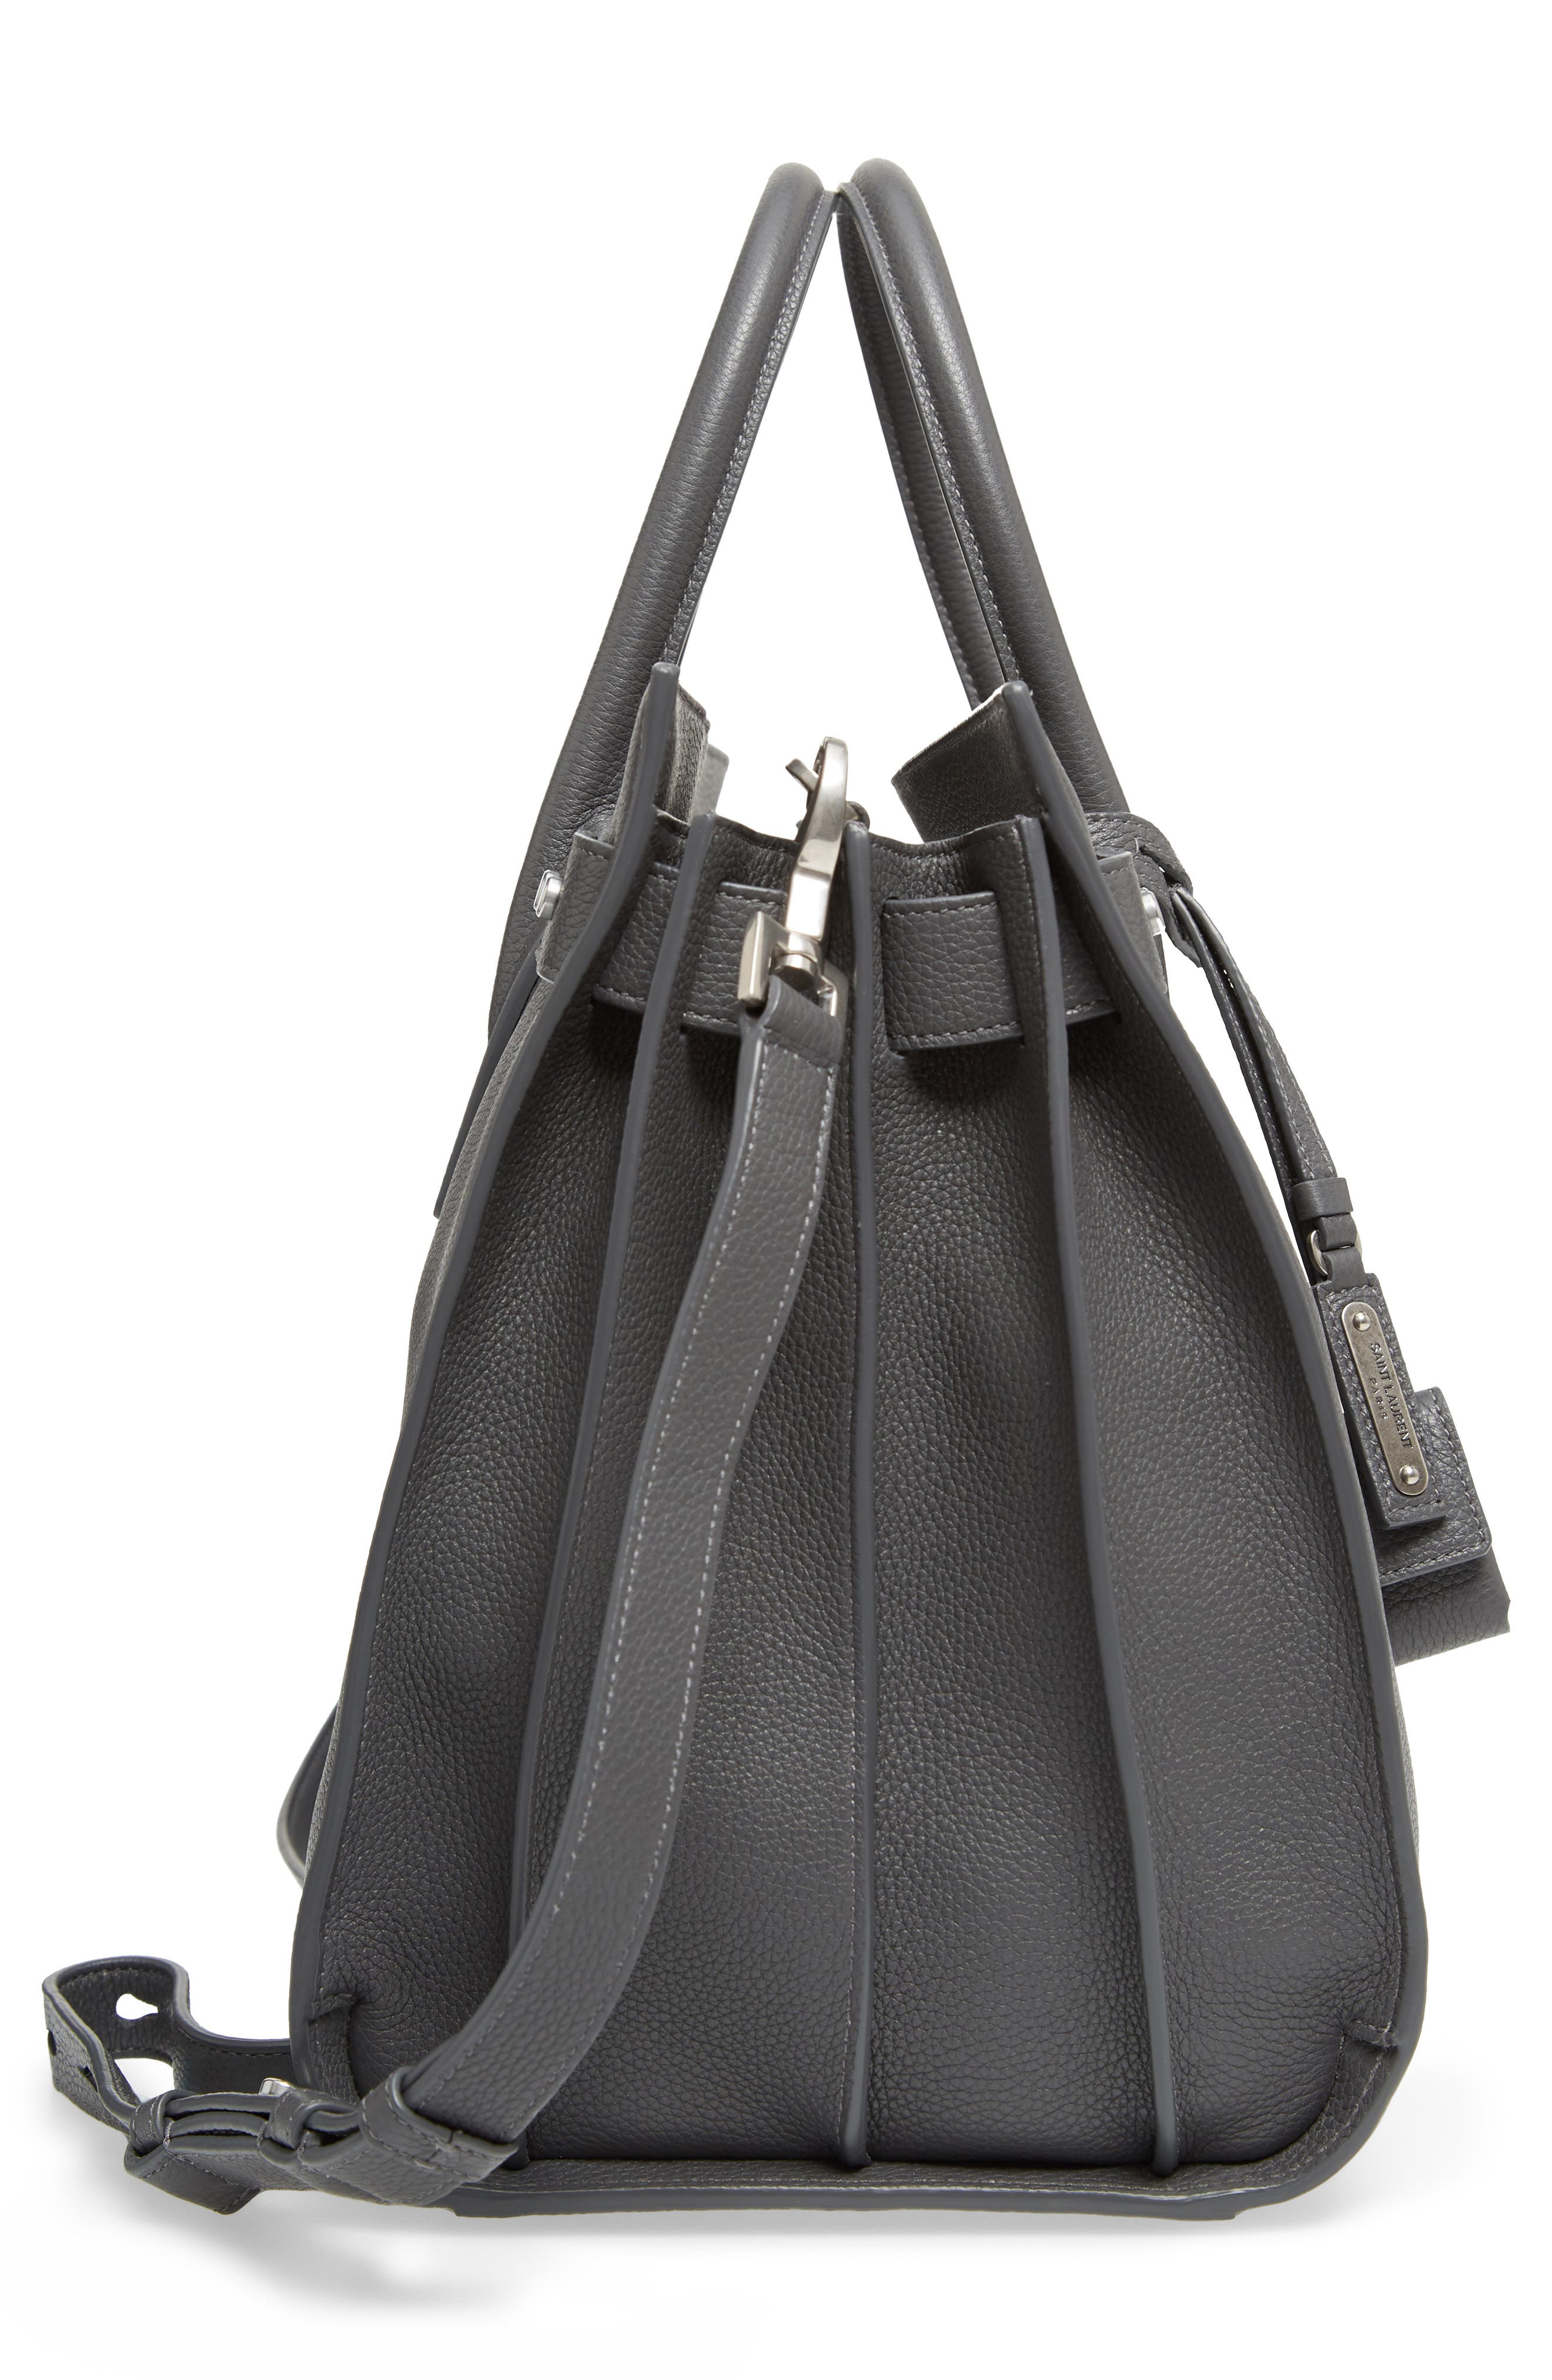 Medium Sac de Jour Grained Leather Tote,                             Alternate thumbnail 4, color,                             Storm